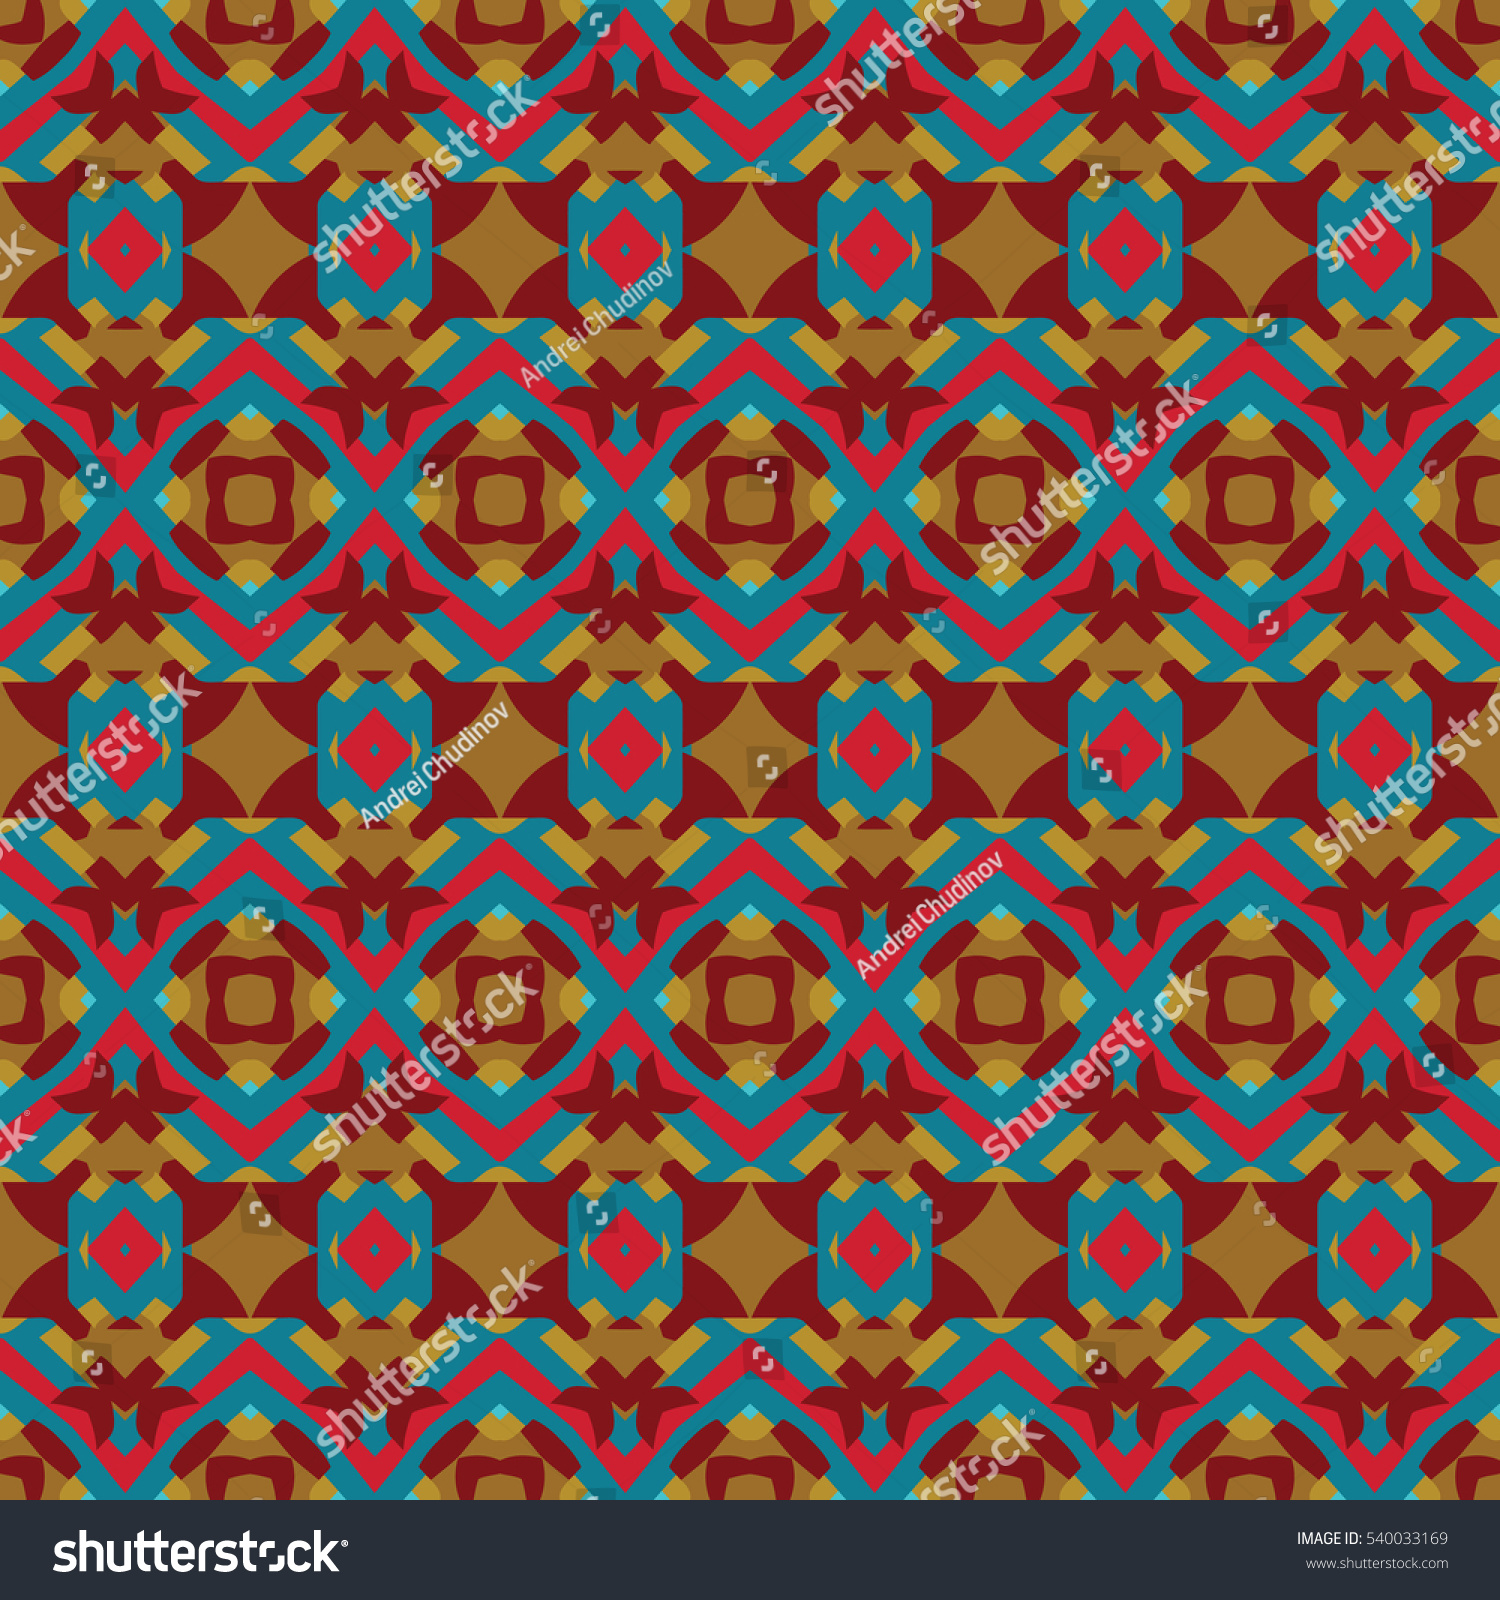 Abstract Seamless Pattern Cloth Design, Wallpaper, Corporate Style, Party Invitation,